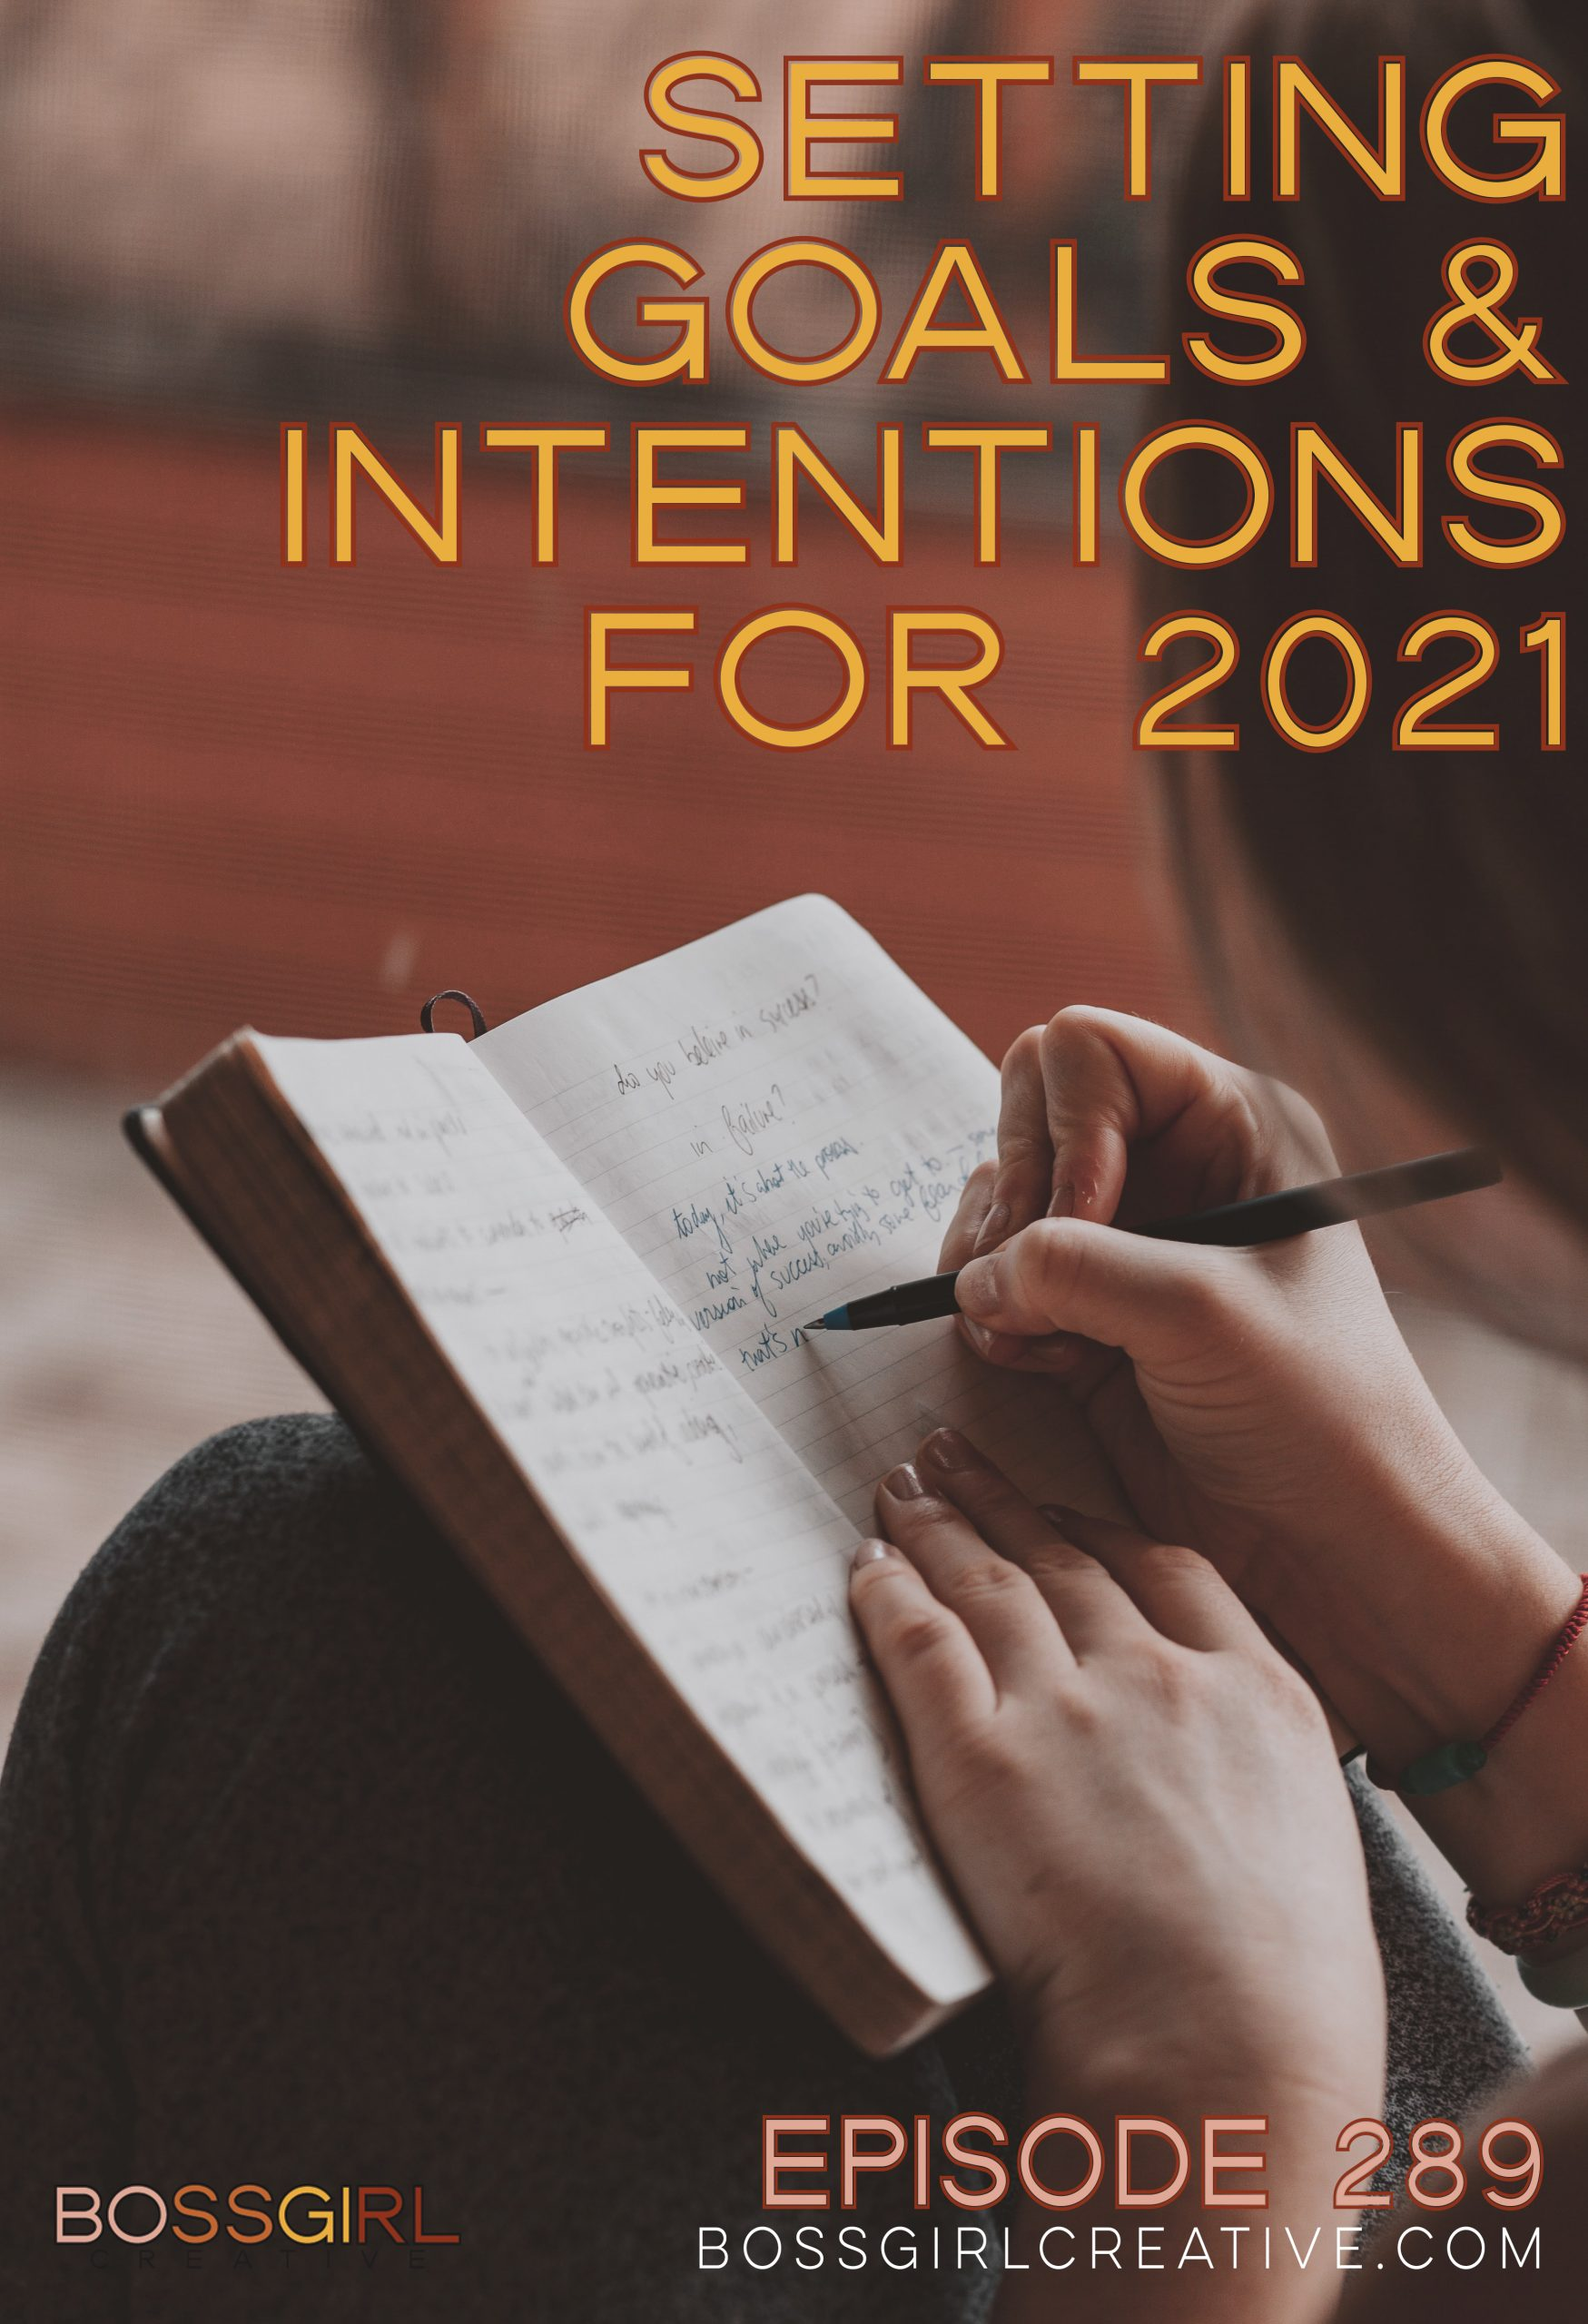 Boss Girl Creative - Episode 289 - Setting Goals and Intentions for 2021